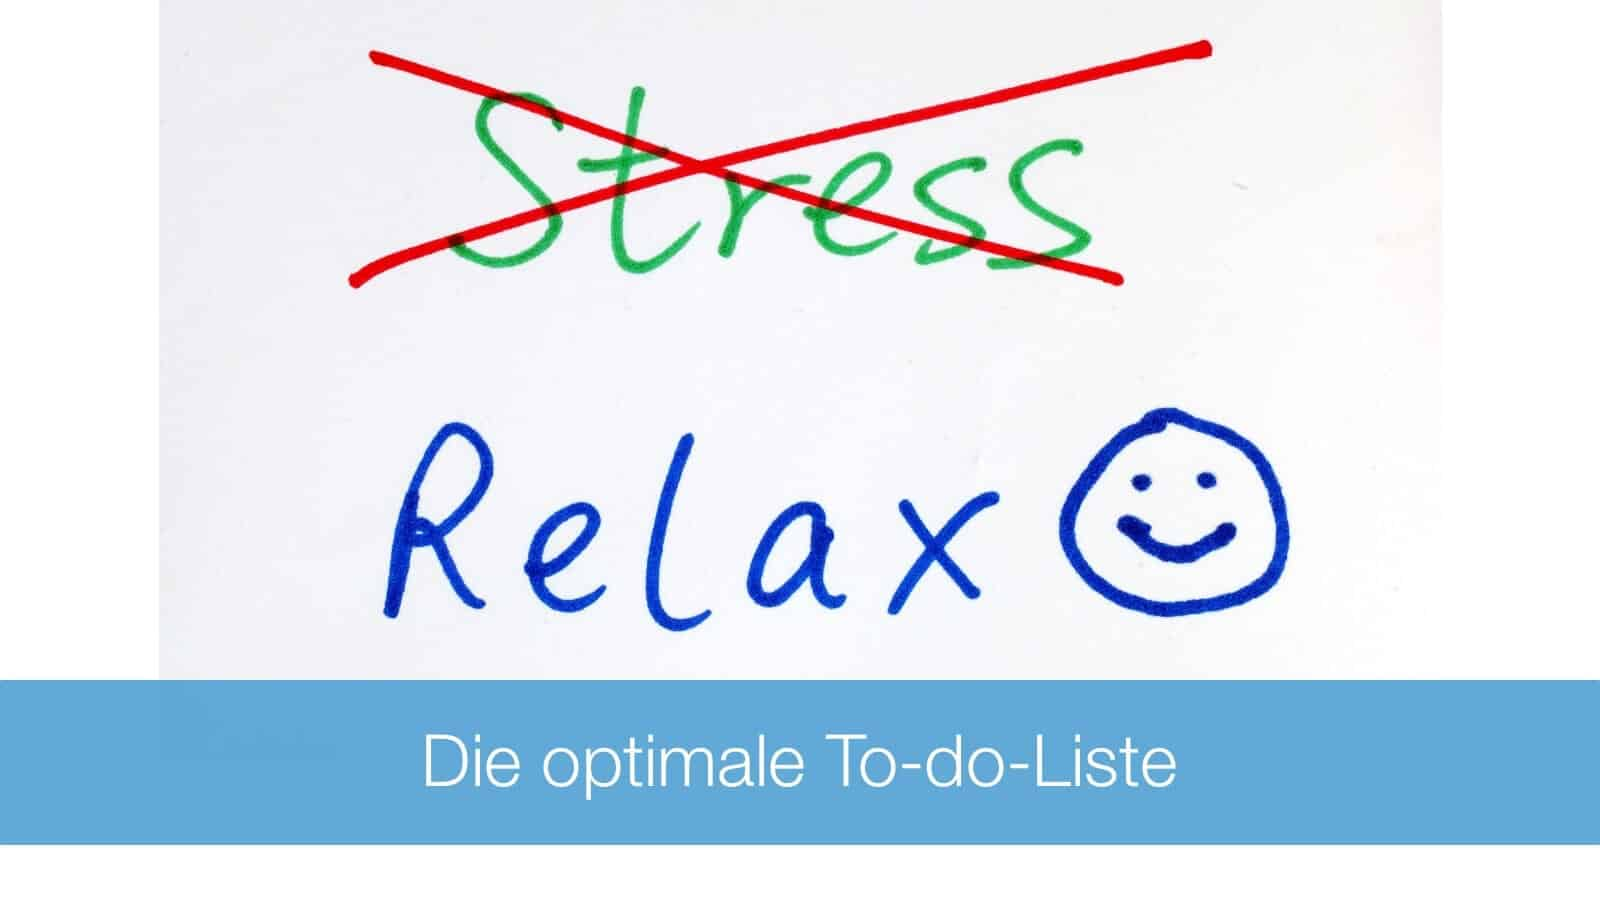 So sieht die optimale To-do-Liste aus